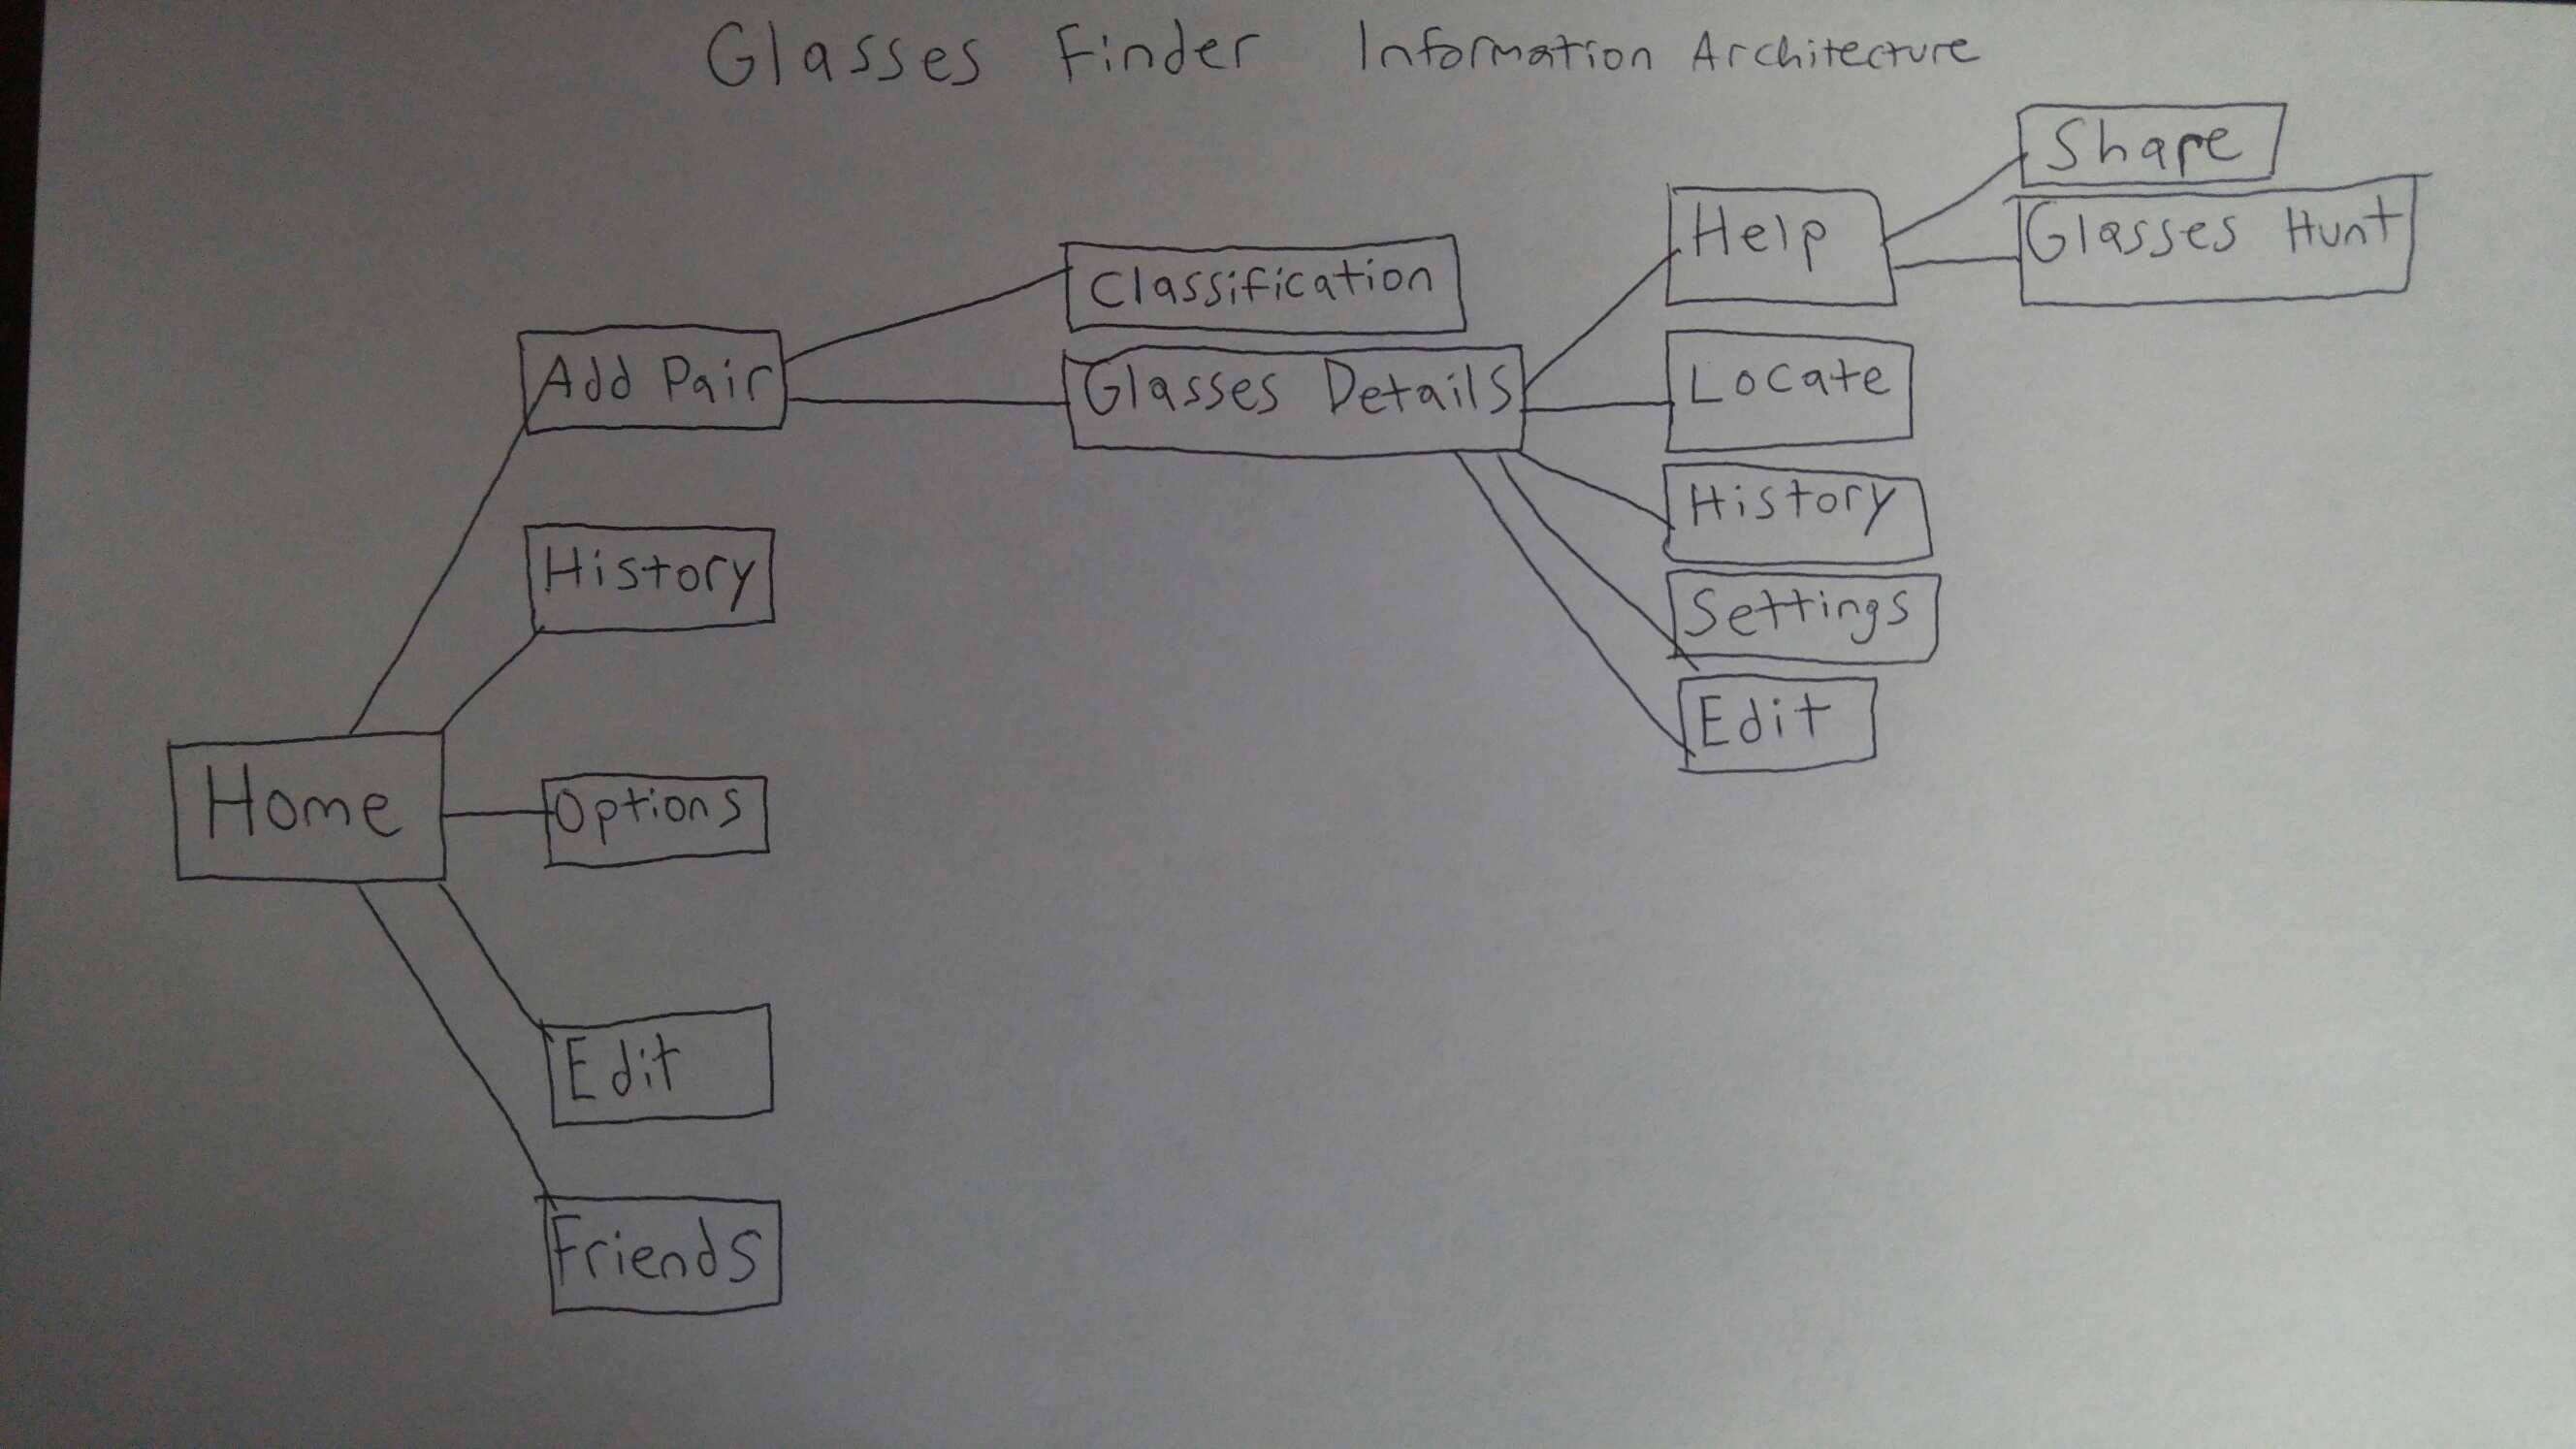 Picture of initial information architecture on paper